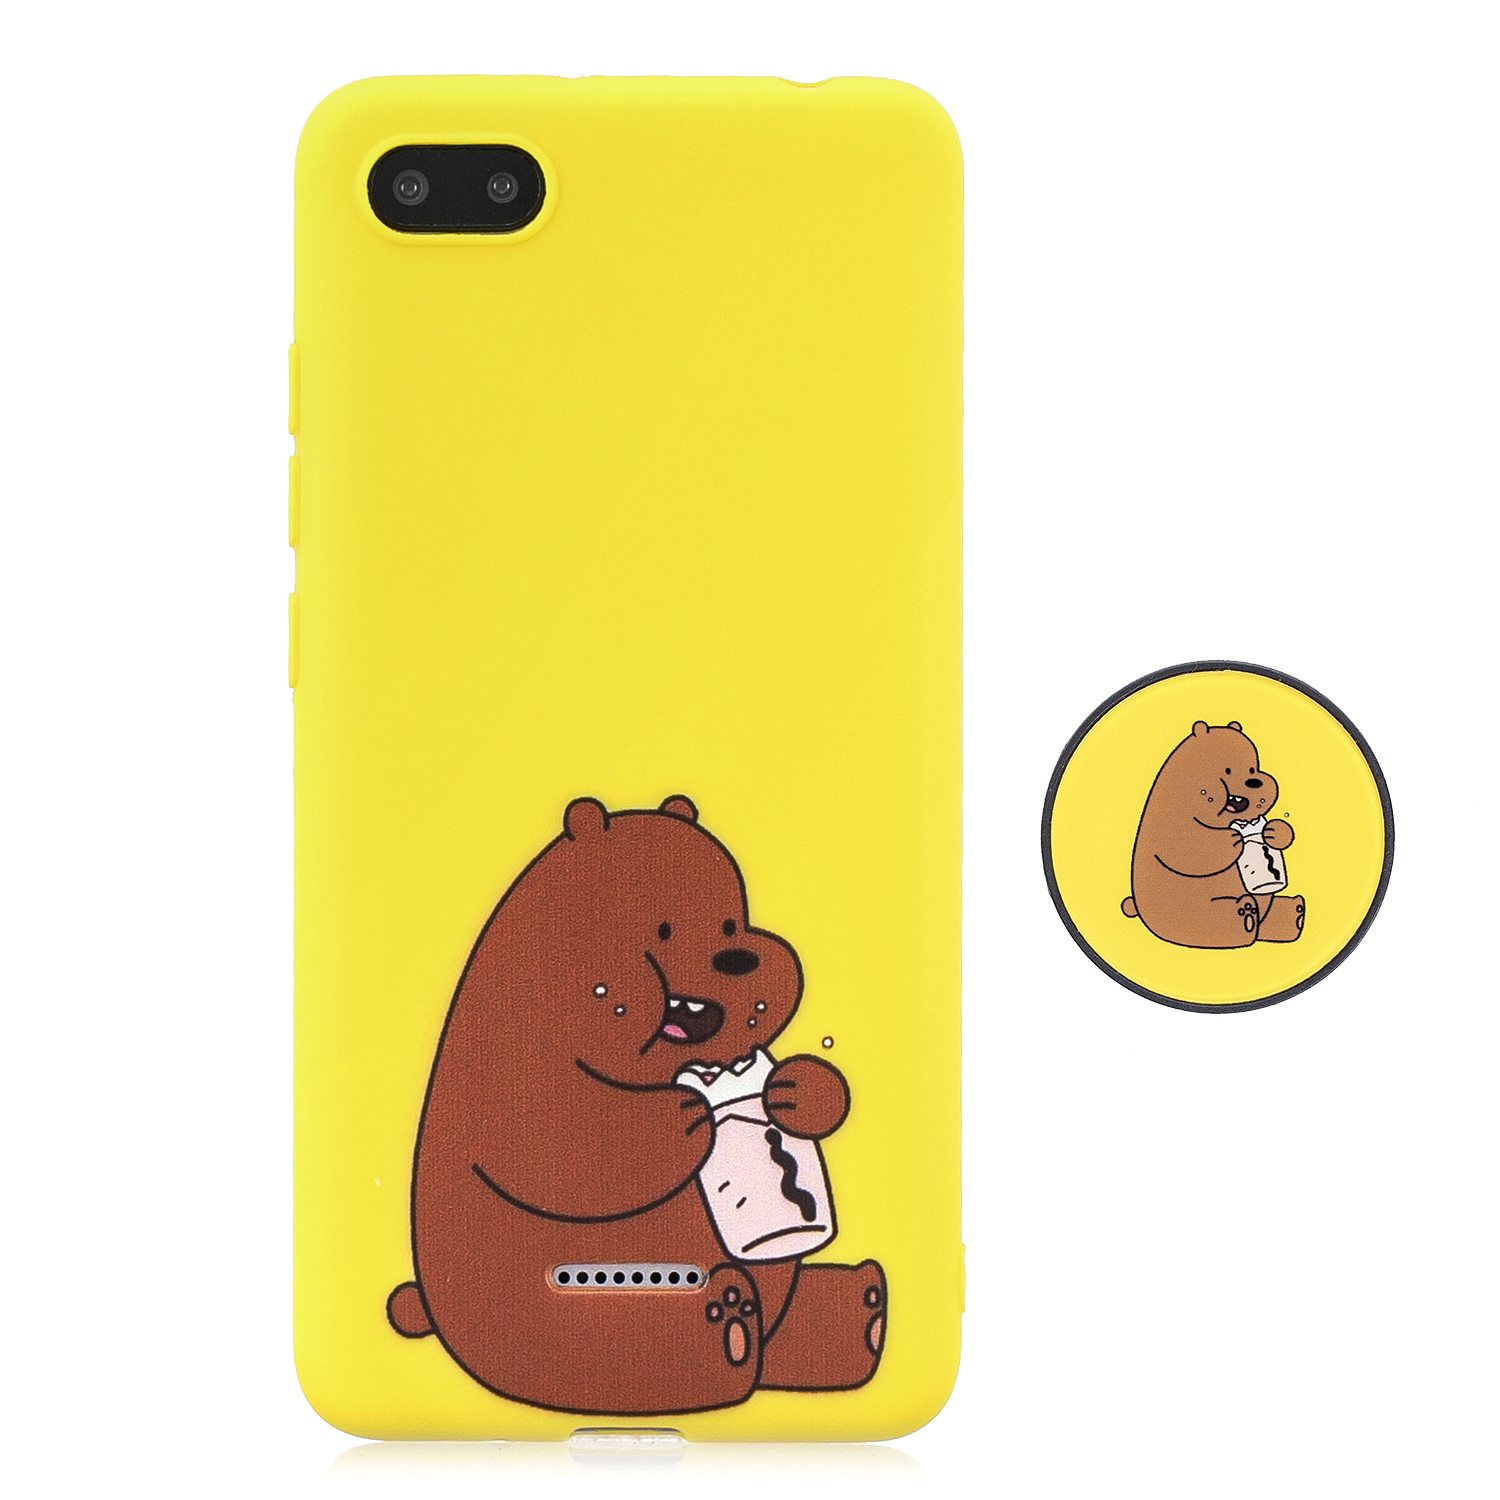 For Redmi 6A Phone Cases TPU Full Cover Cute Cartoon Painted Case Girls Mobile Phone Cover with Matched Pattern Adjustable Bracket 8